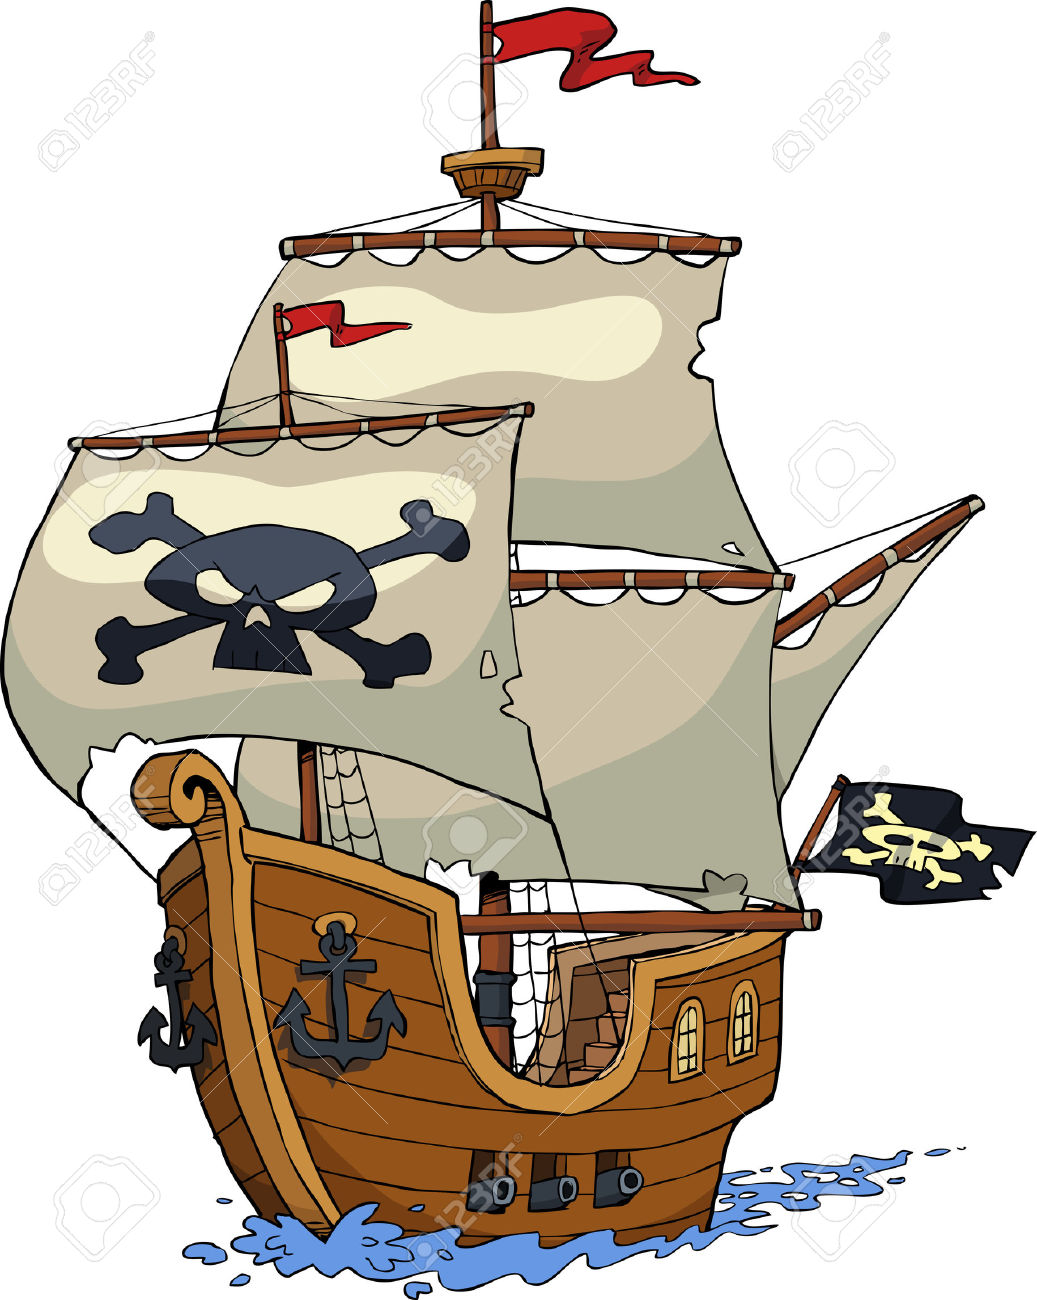 1037x1300 Image Result For Pirate Ship Cartoon Background Ship Concept